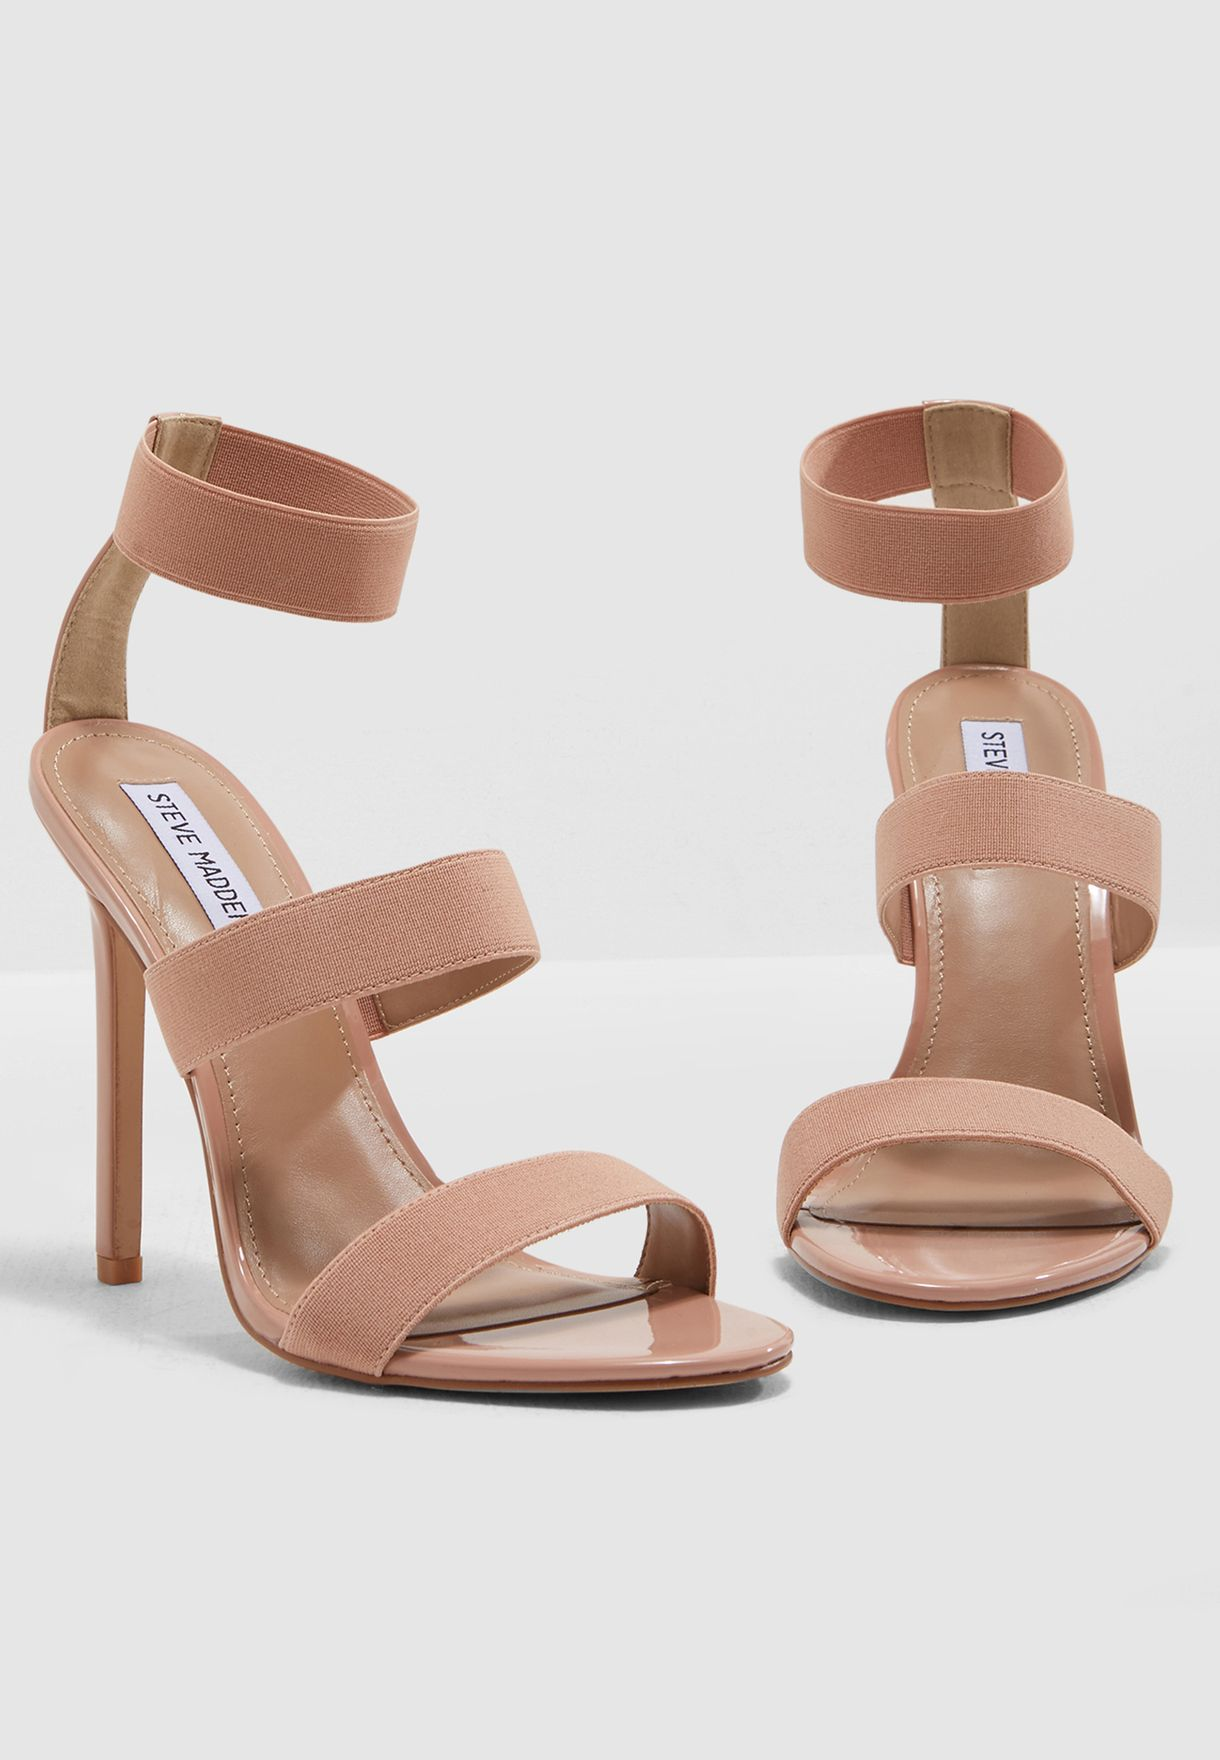 e2db2362c23 Shop Steve Madden beige Crave Heel Sandal CRAVE for Women in UAE ...